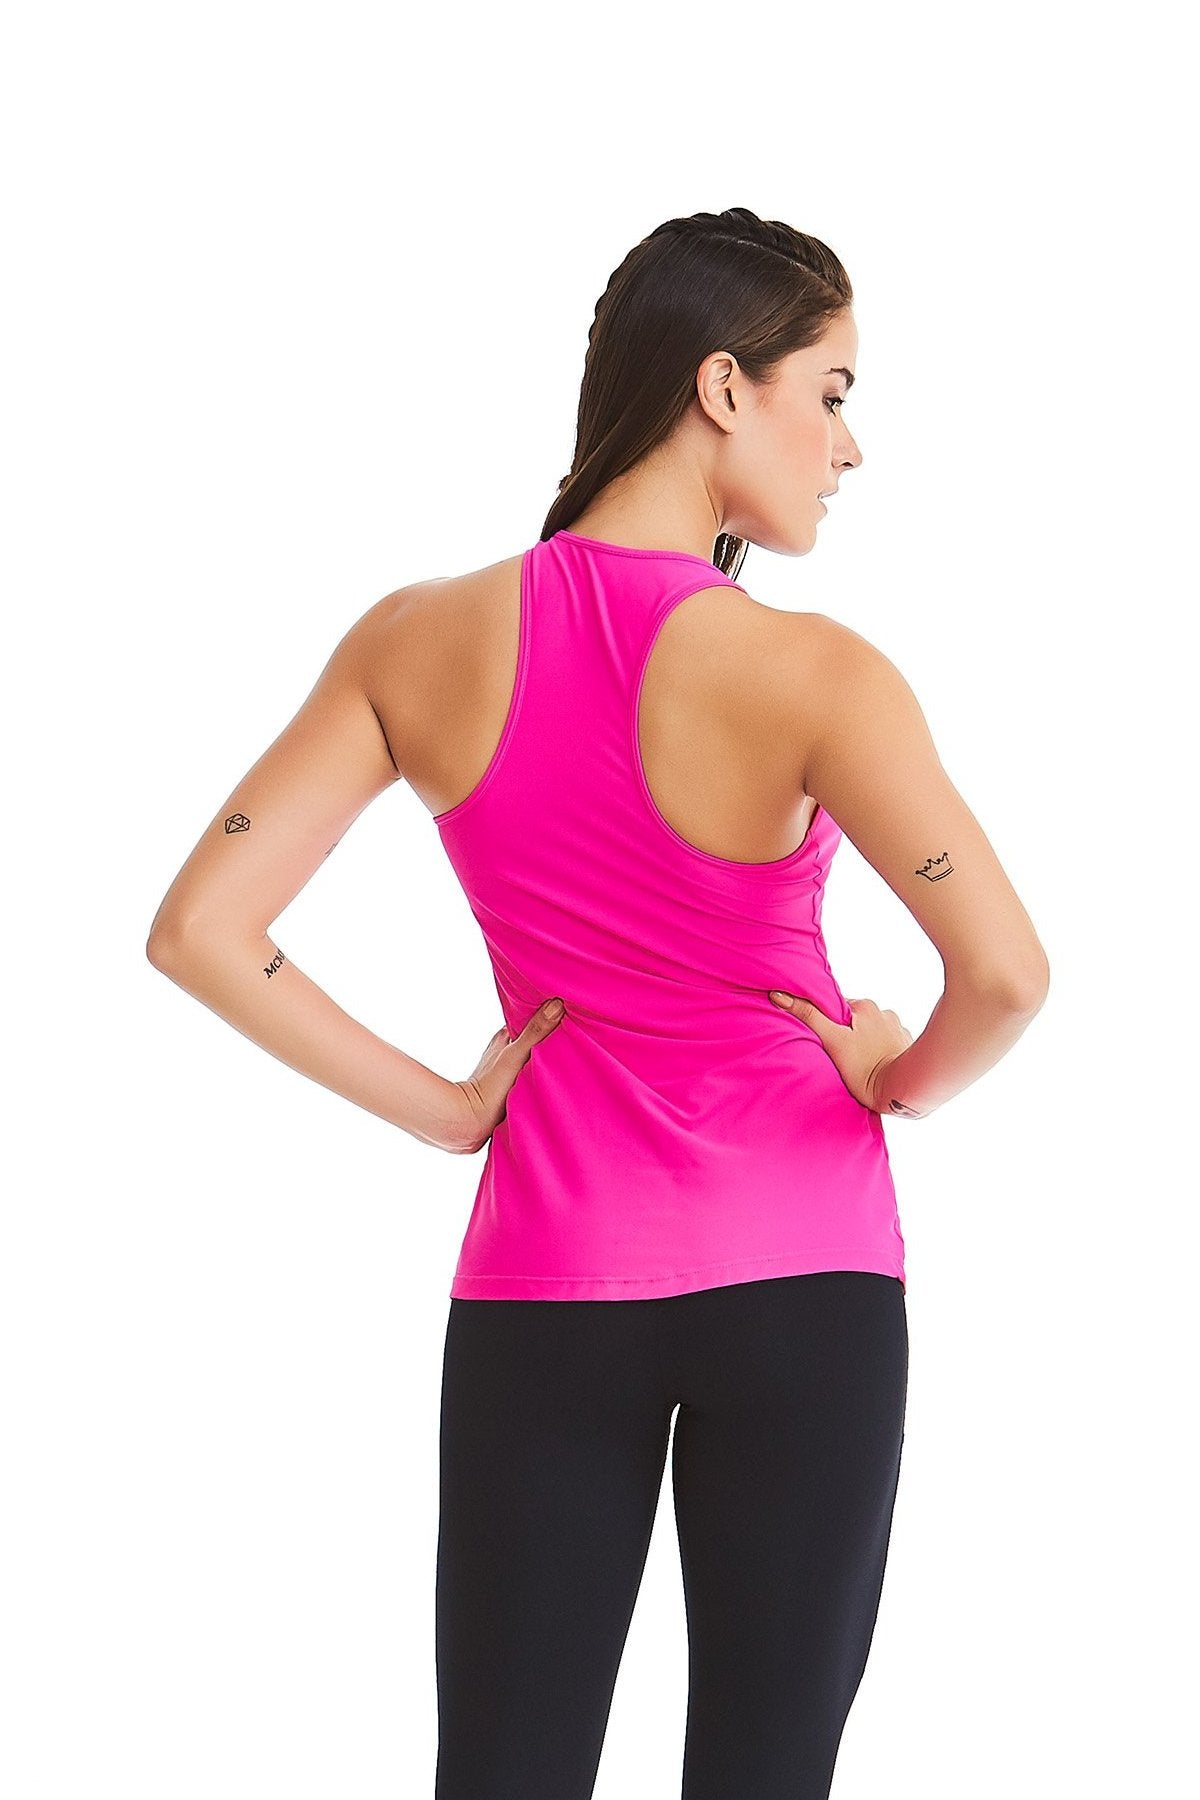 CajuBrasil USA Brazilian Fashion Fitness Top Laser LIKES - Pink - UV Protection!